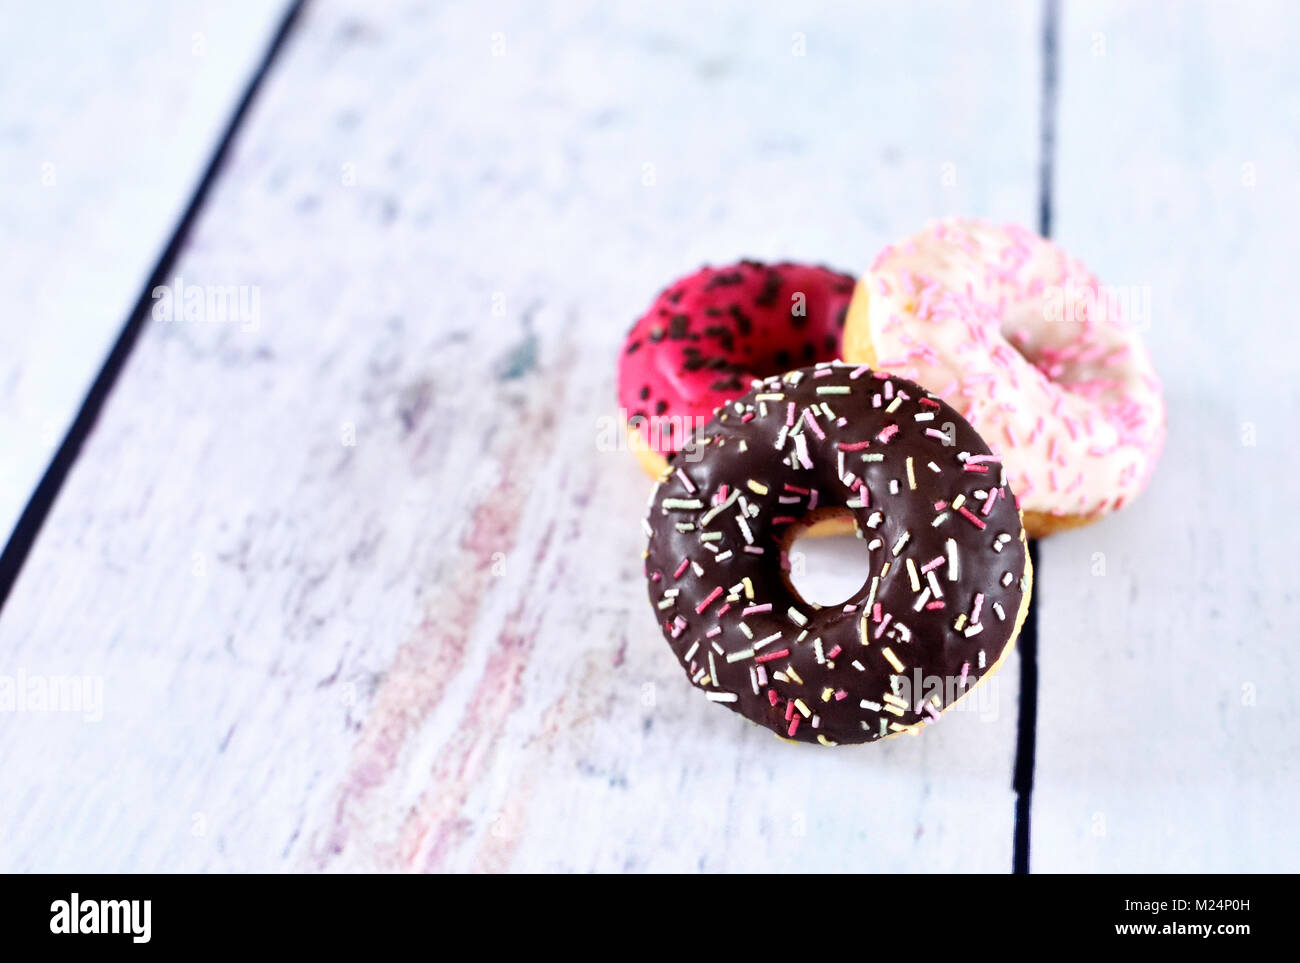 delicious donuts with glaze or icing and sprinkles. variation of fresh donuts on a white wooden table. Arrangement - Stock Image